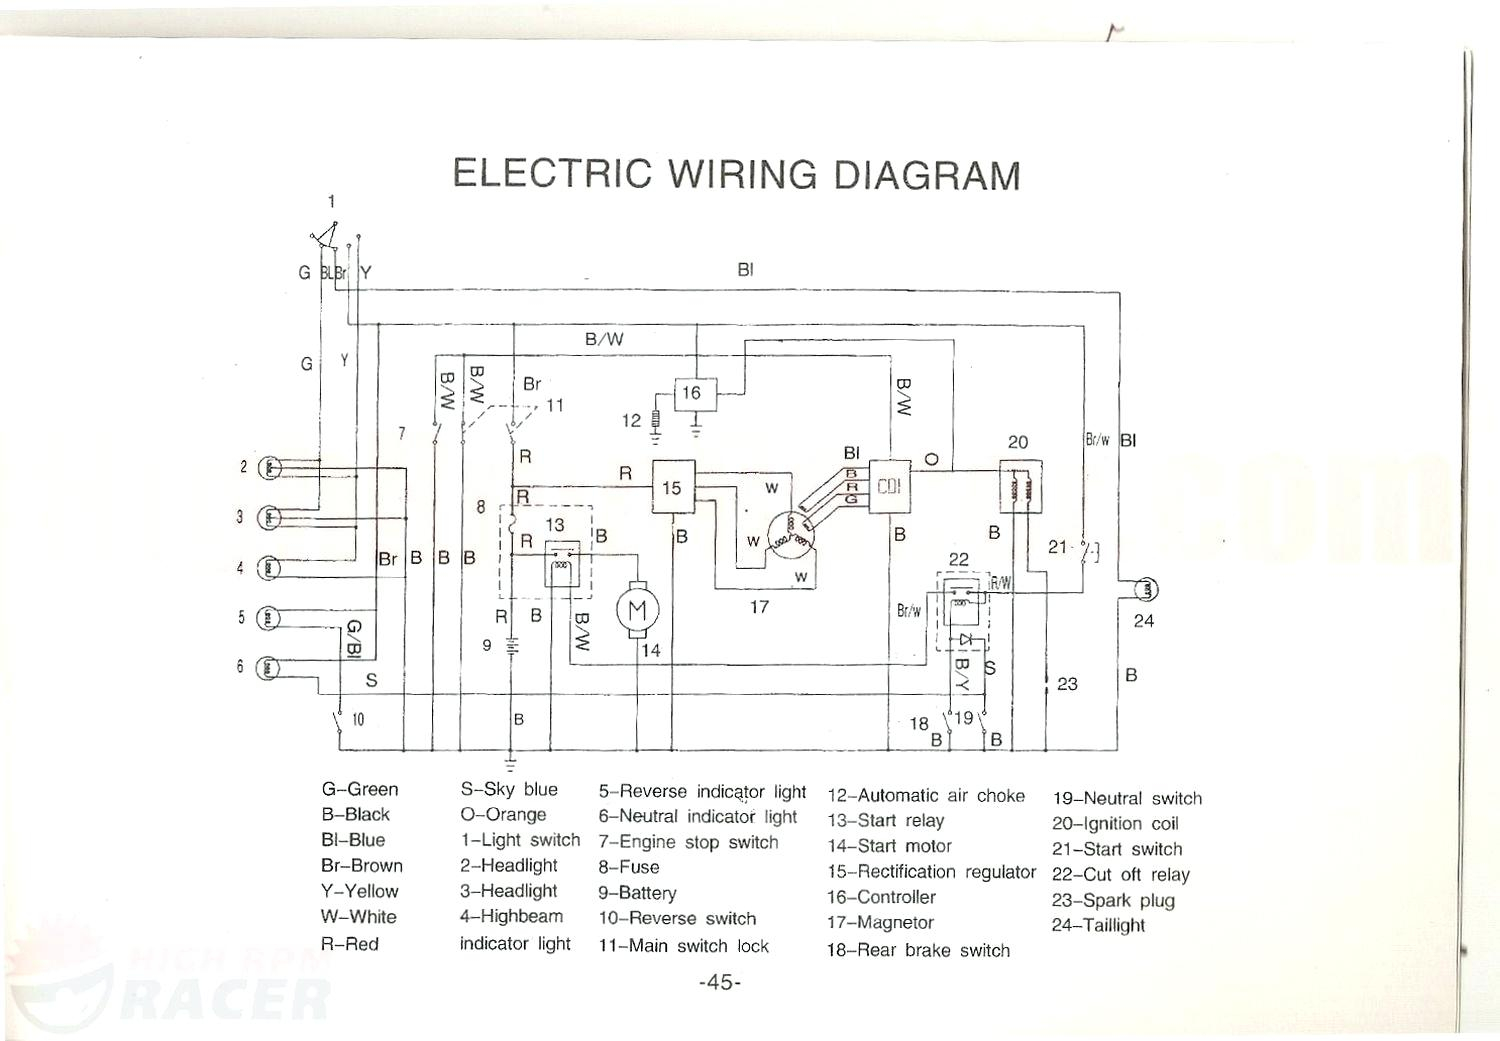 allen bradley mcc bucket wiring diagram gallery. Black Bedroom Furniture Sets. Home Design Ideas